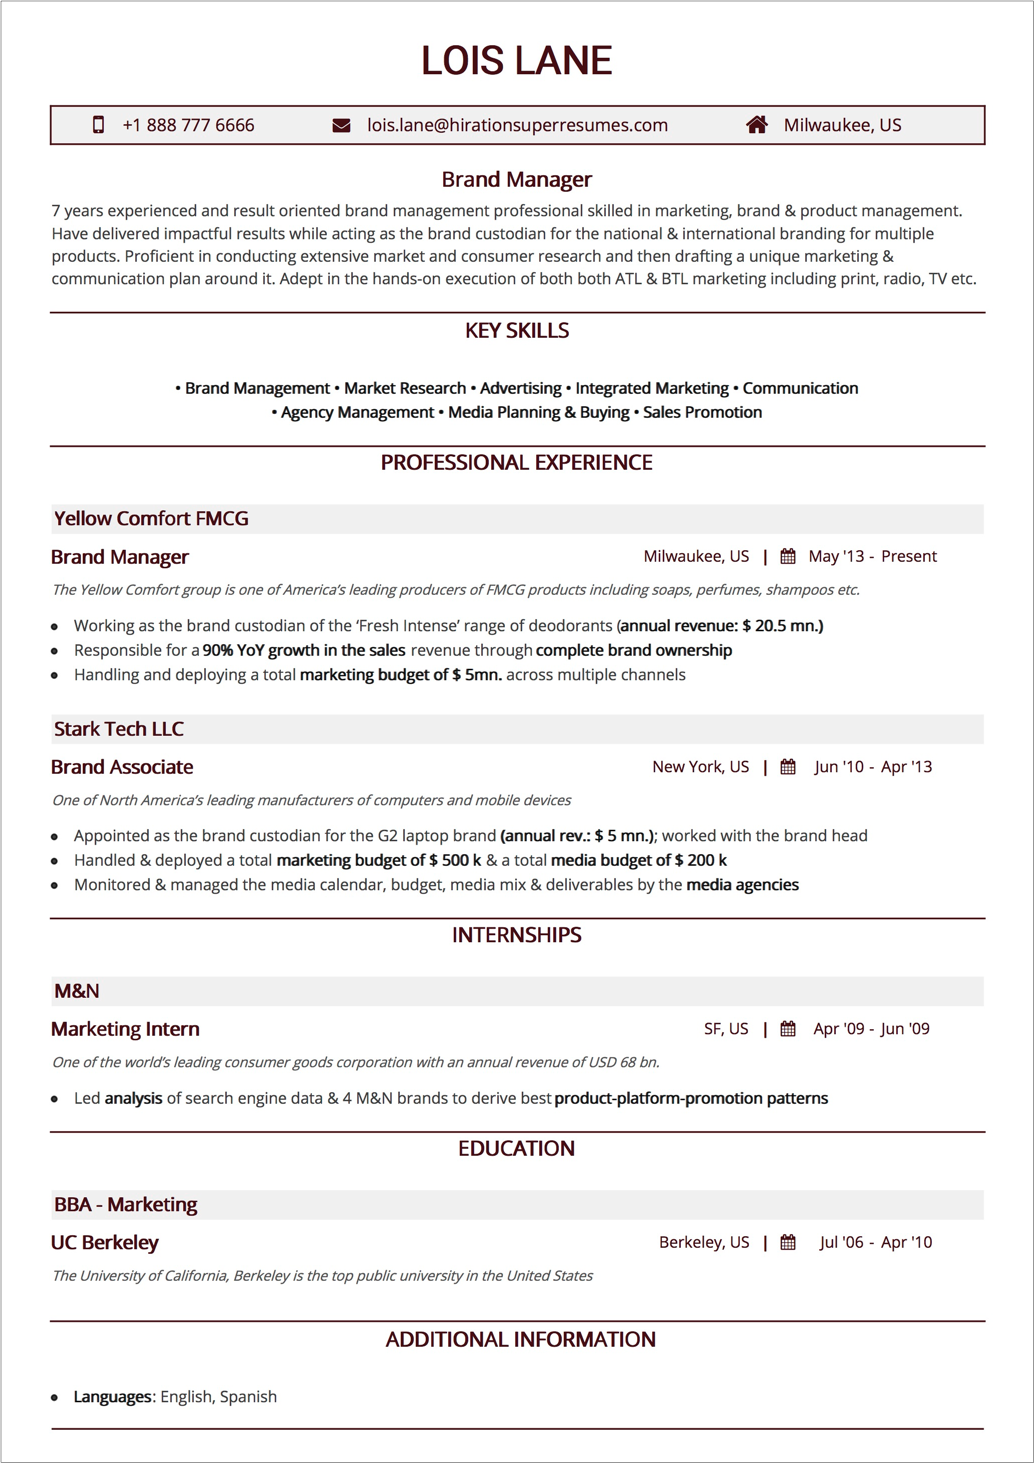 Business analyst resume examples 2018 guide best samples reversechronologicalresumeformatbusiness analyst flashek Choice Image